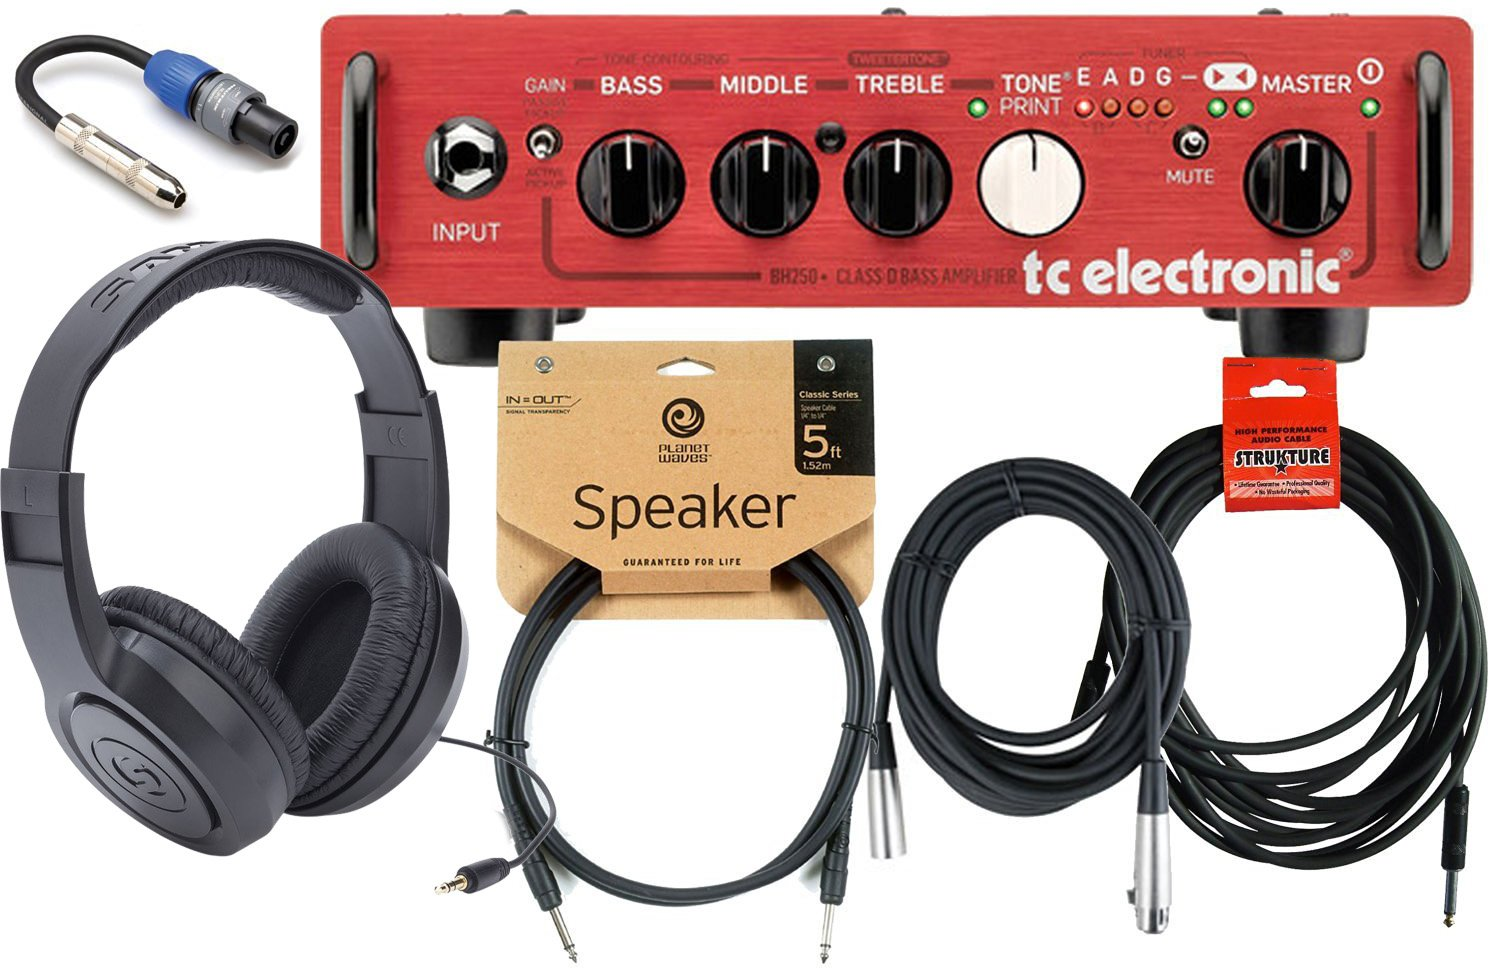 TC Electronic BH250 Bass Guitar Head w/ Speaker Cable, 1/4'' to Speakon Adapter, Headphones, Mic Cable, and Instrument Cable! by TC Electronics